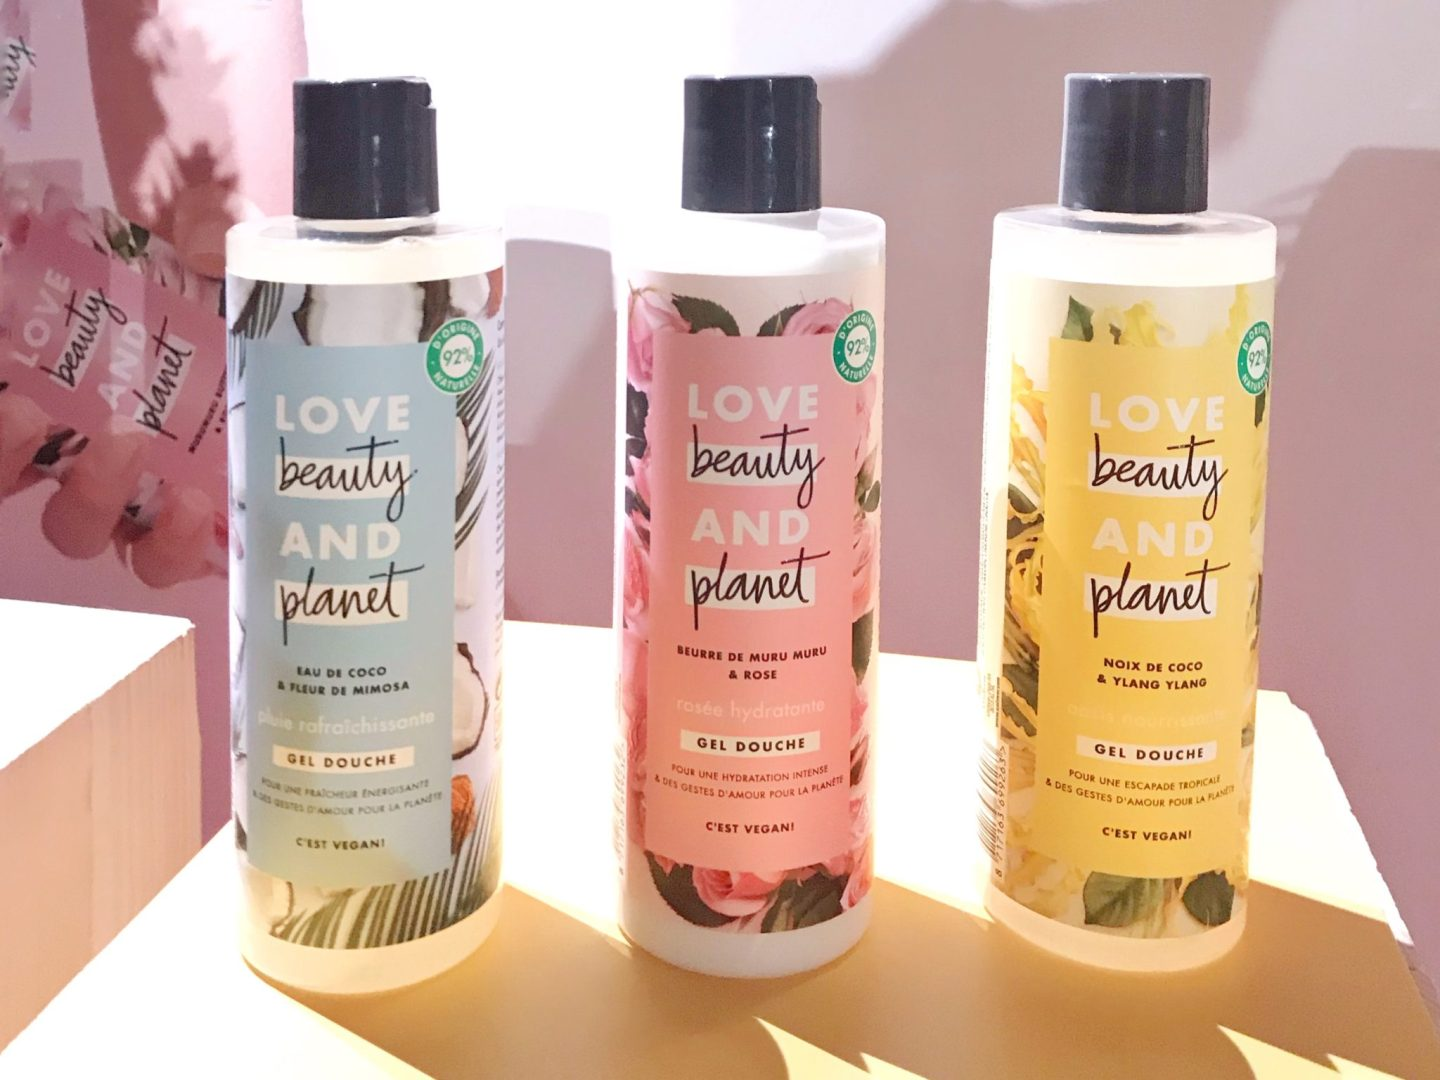 LOVE BEAUTY AND PLANET Presentation